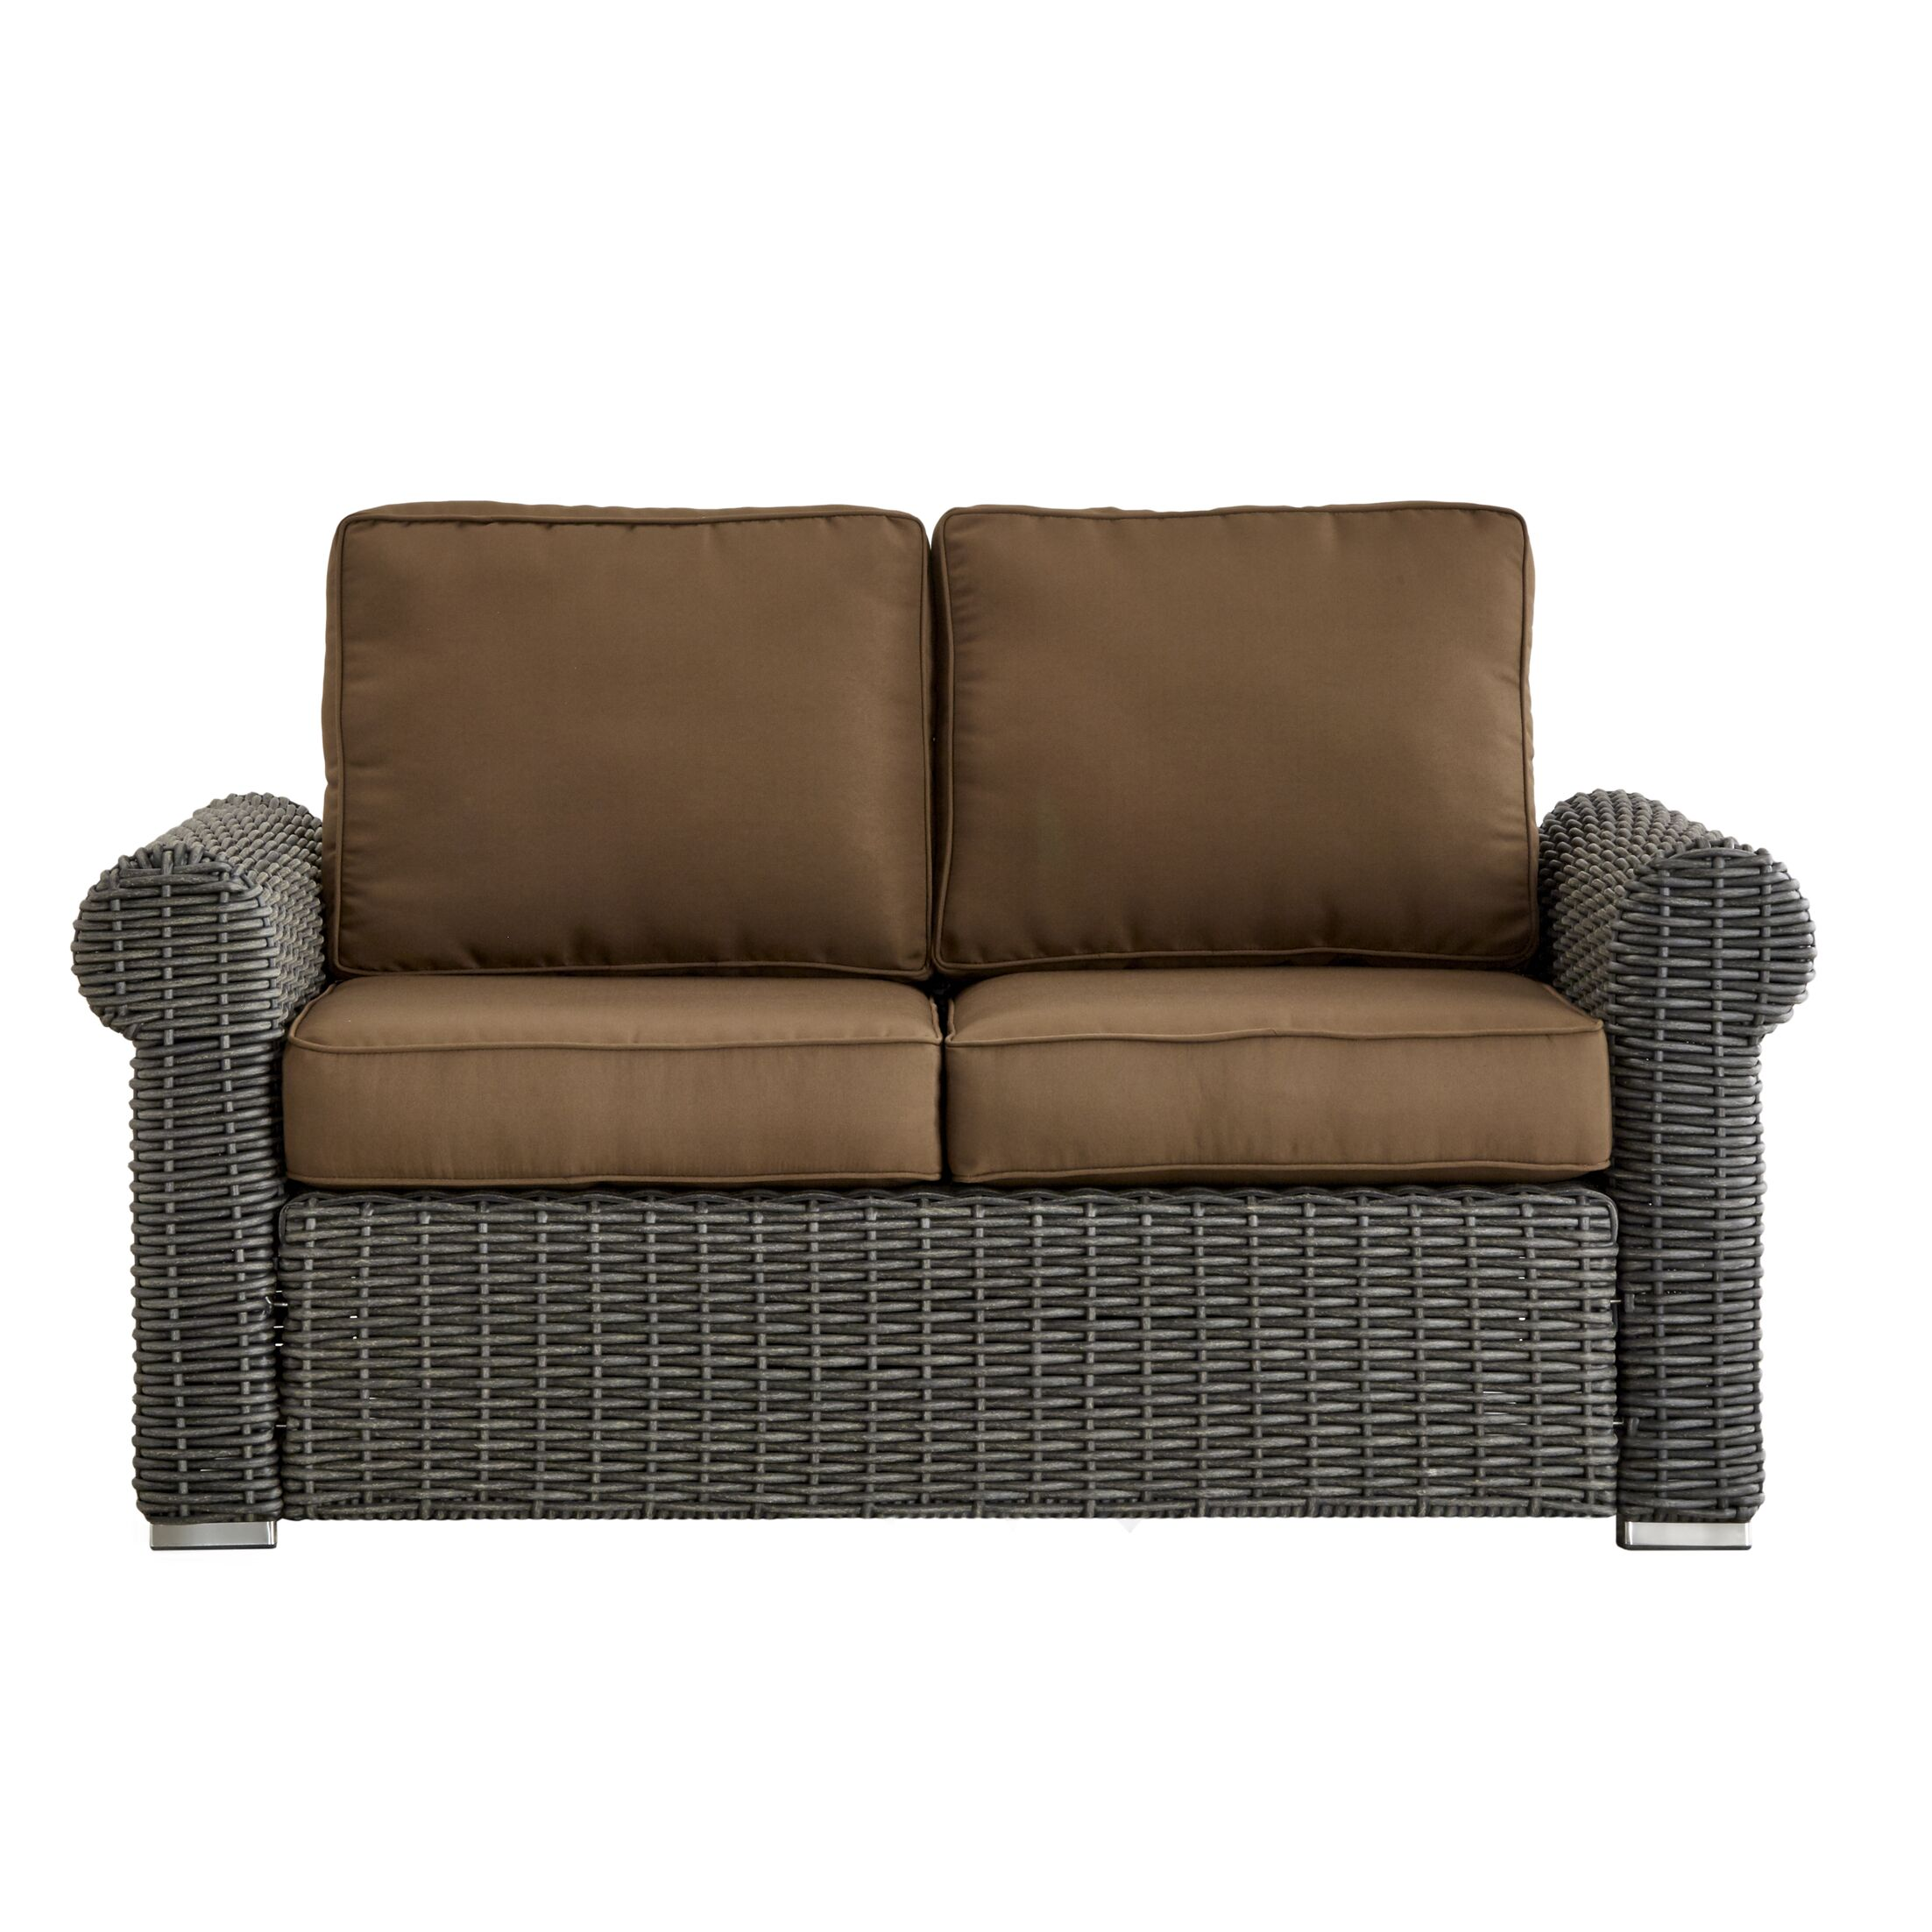 Rathdowney Loveseat with Cushions Fabric: Brown, Finish: Mocha